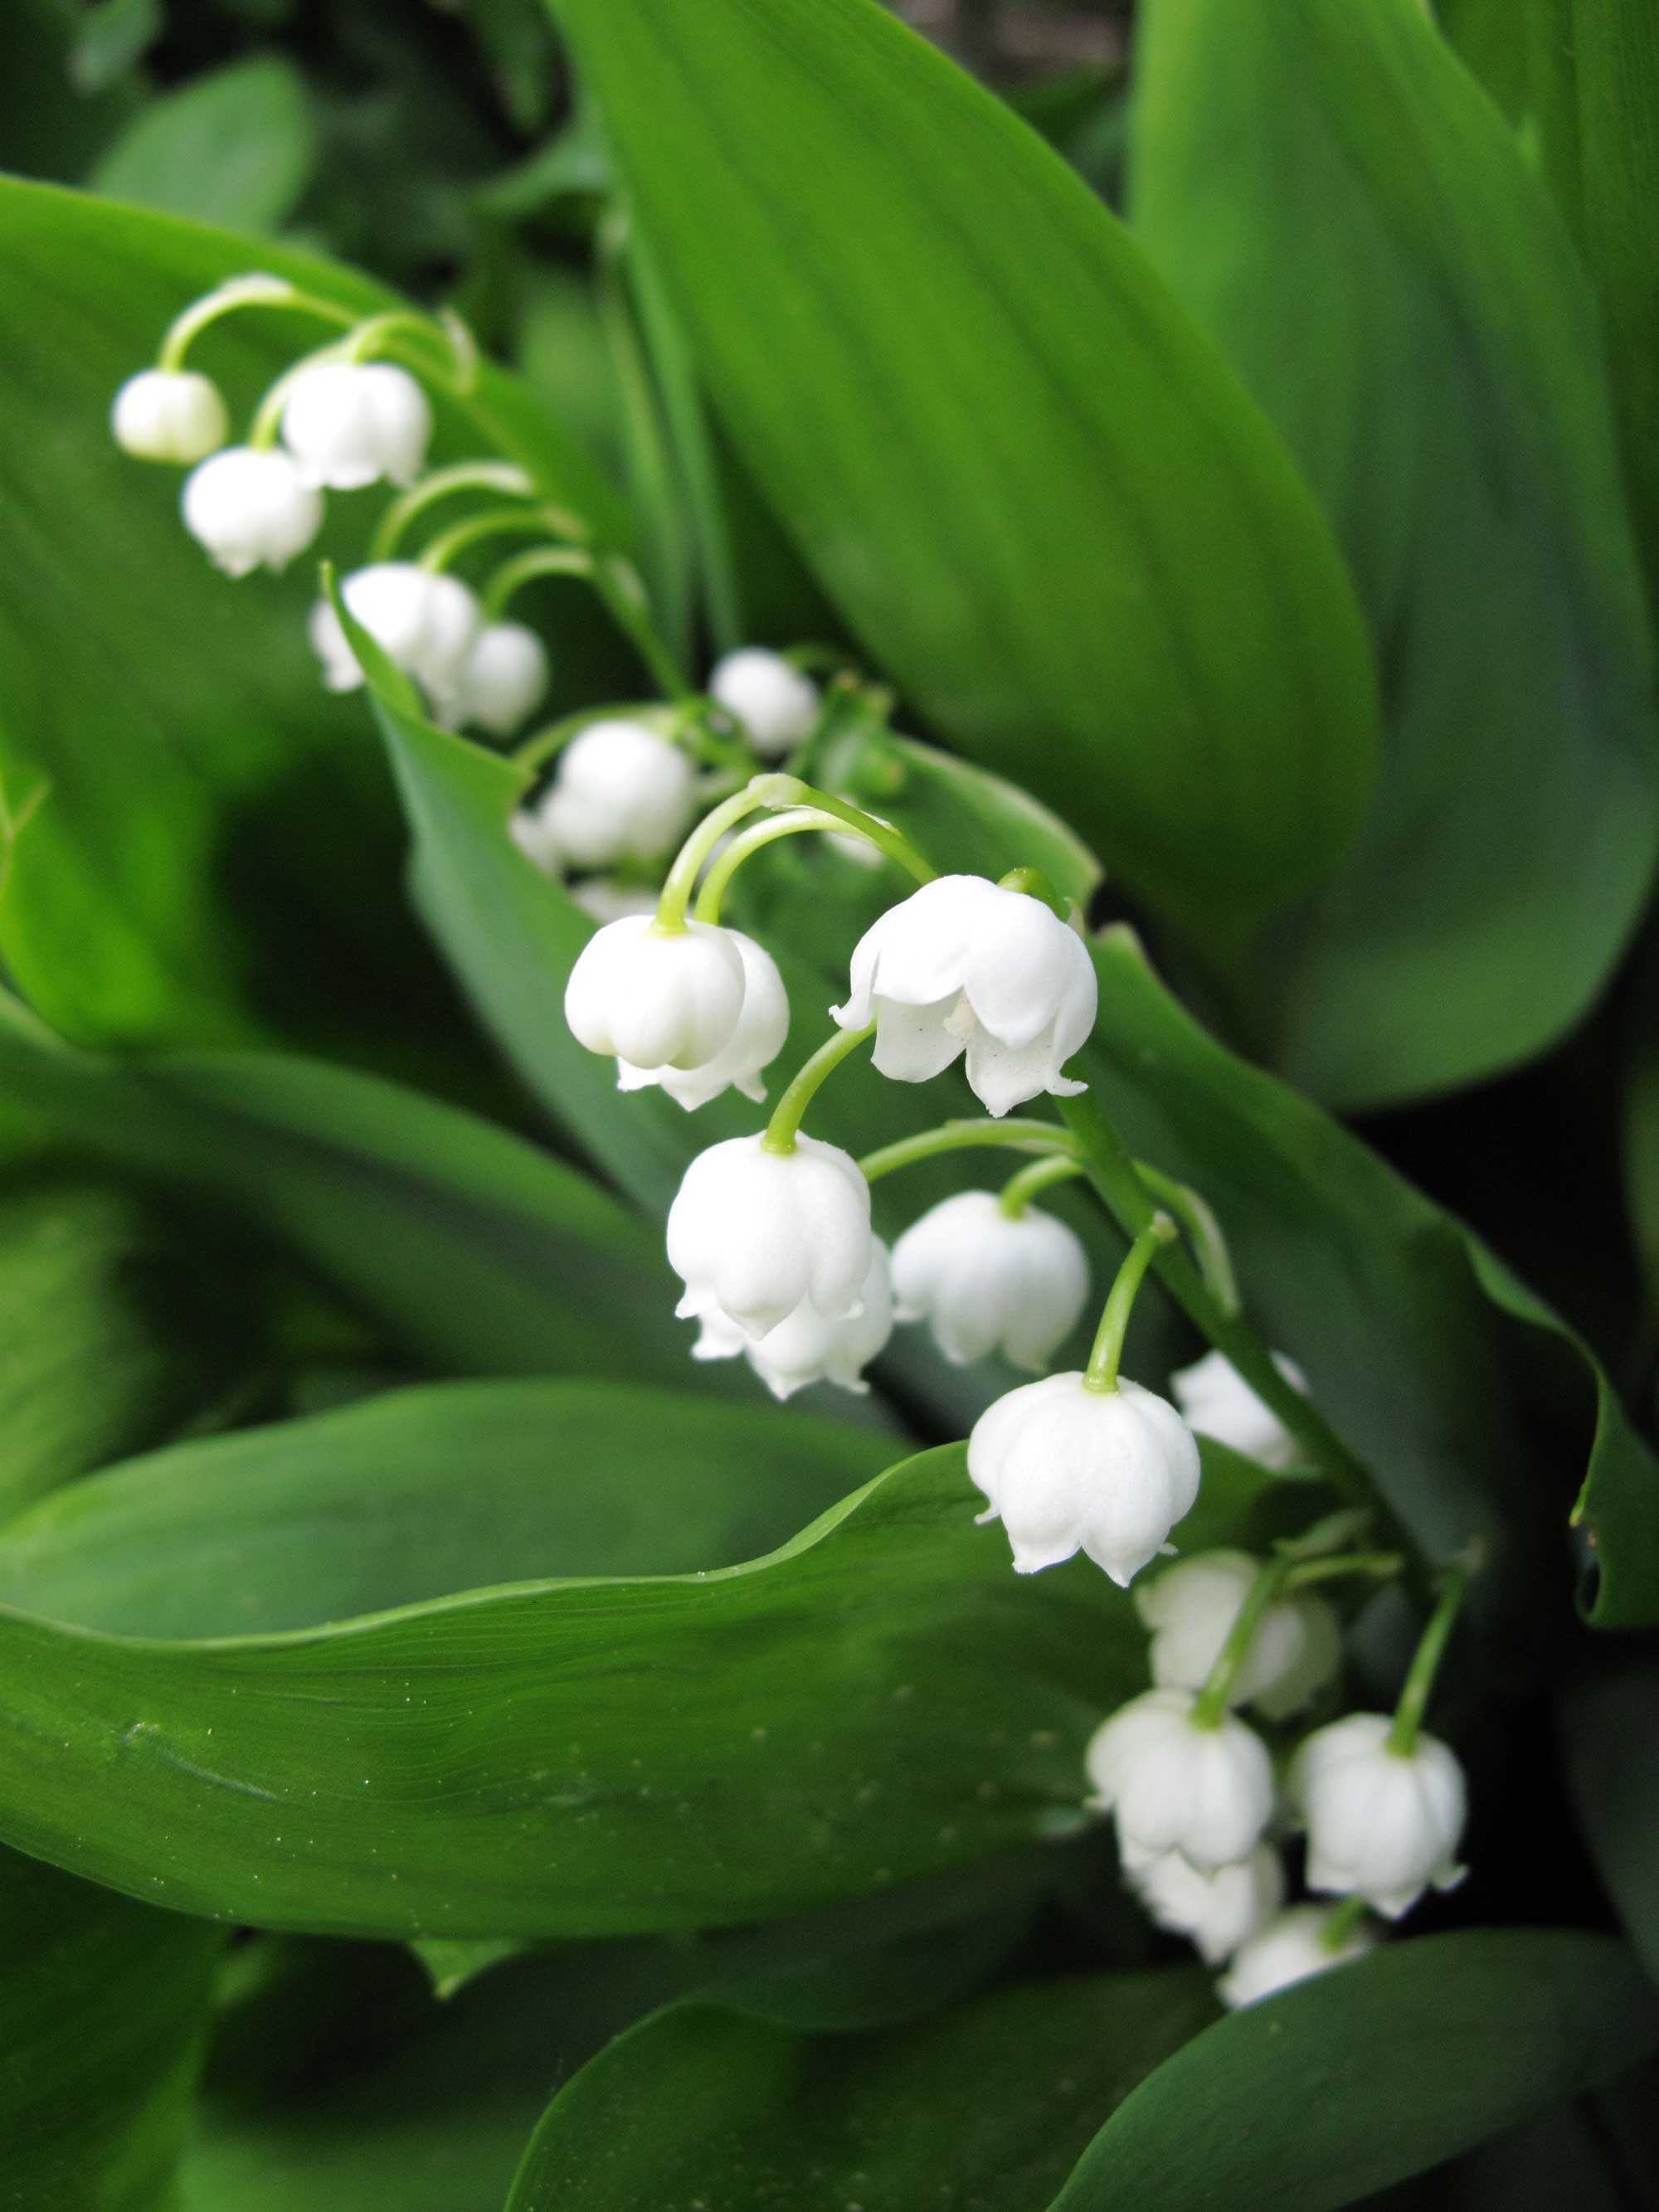 Growing lily of the valley tips and tales longfield gardens growing lily of the valley longfield gardens izmirmasajfo